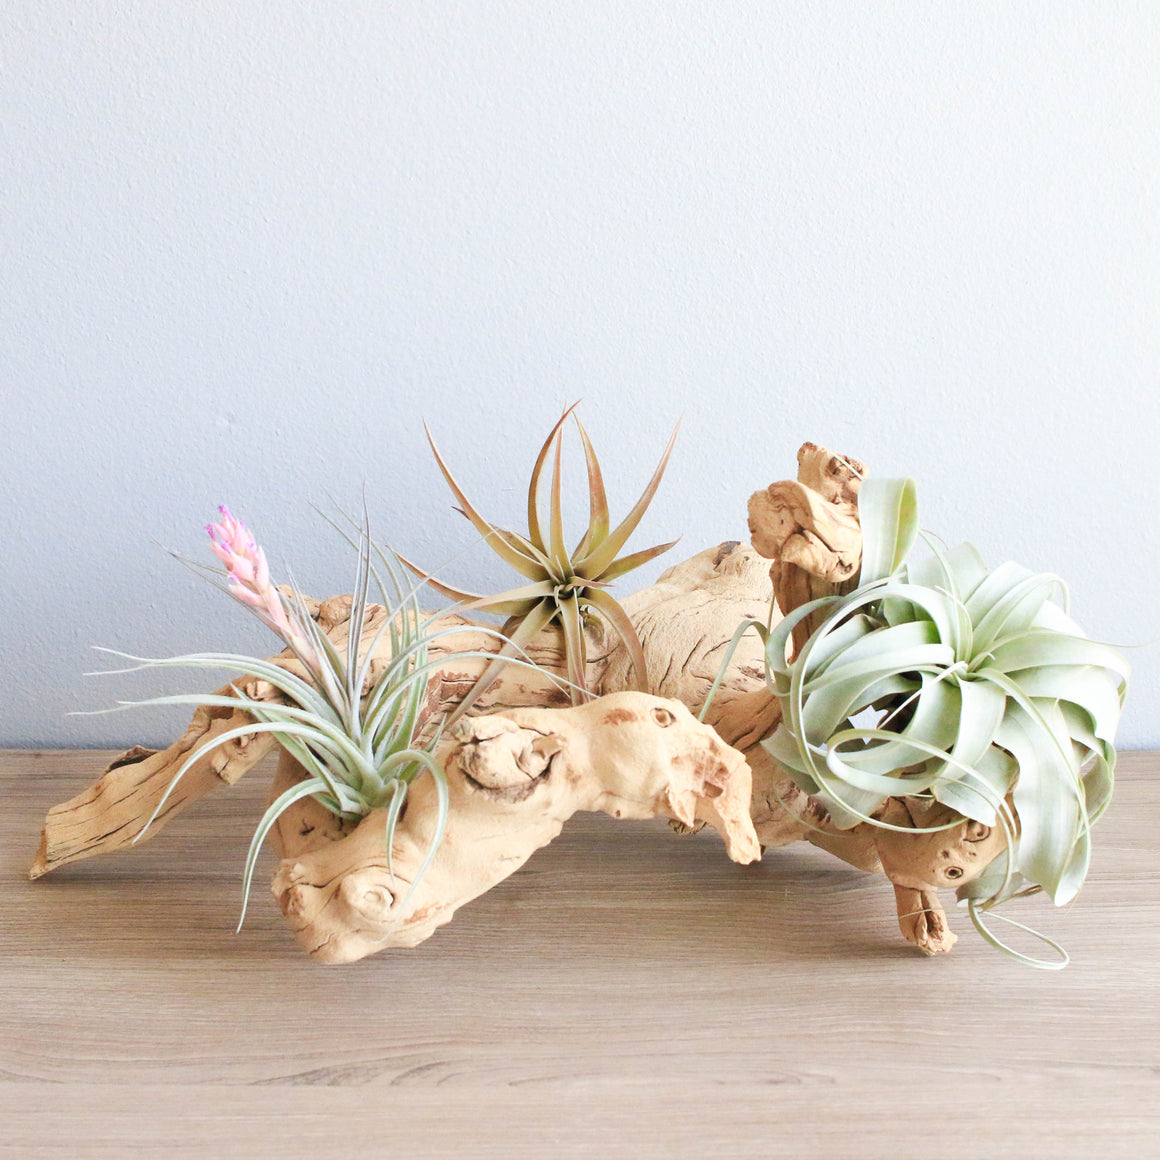 Medium Grapevine Wood with Xerographica, Capitata Peach, and Stricta Hybrid Air Plants